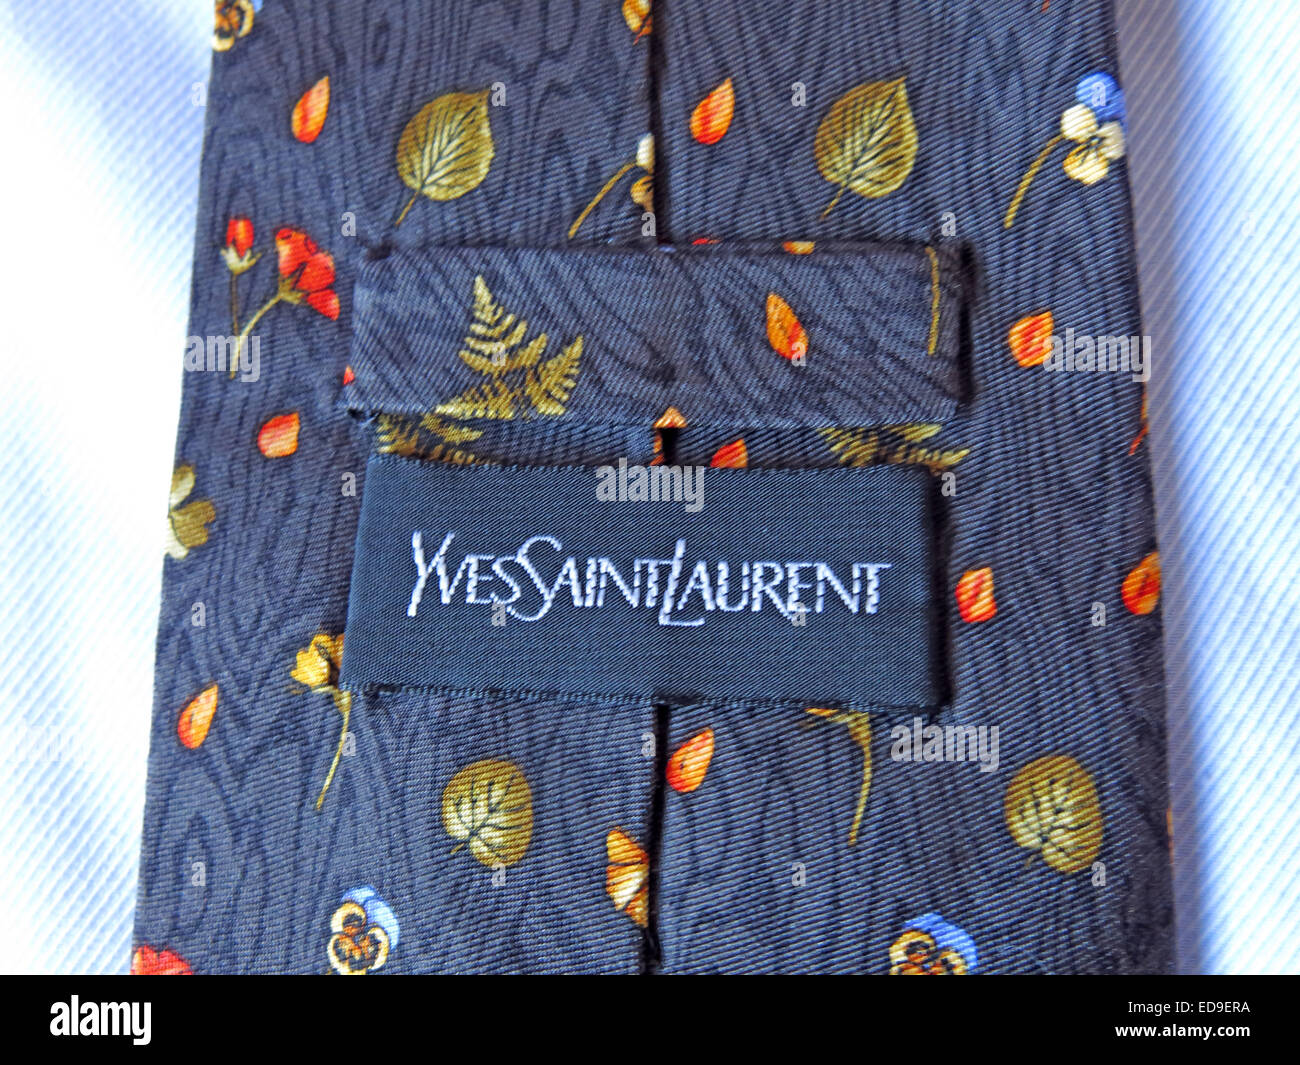 Interesting YSL Yves Saint Laurent vintage tie, male neckware in silk - Stock Image